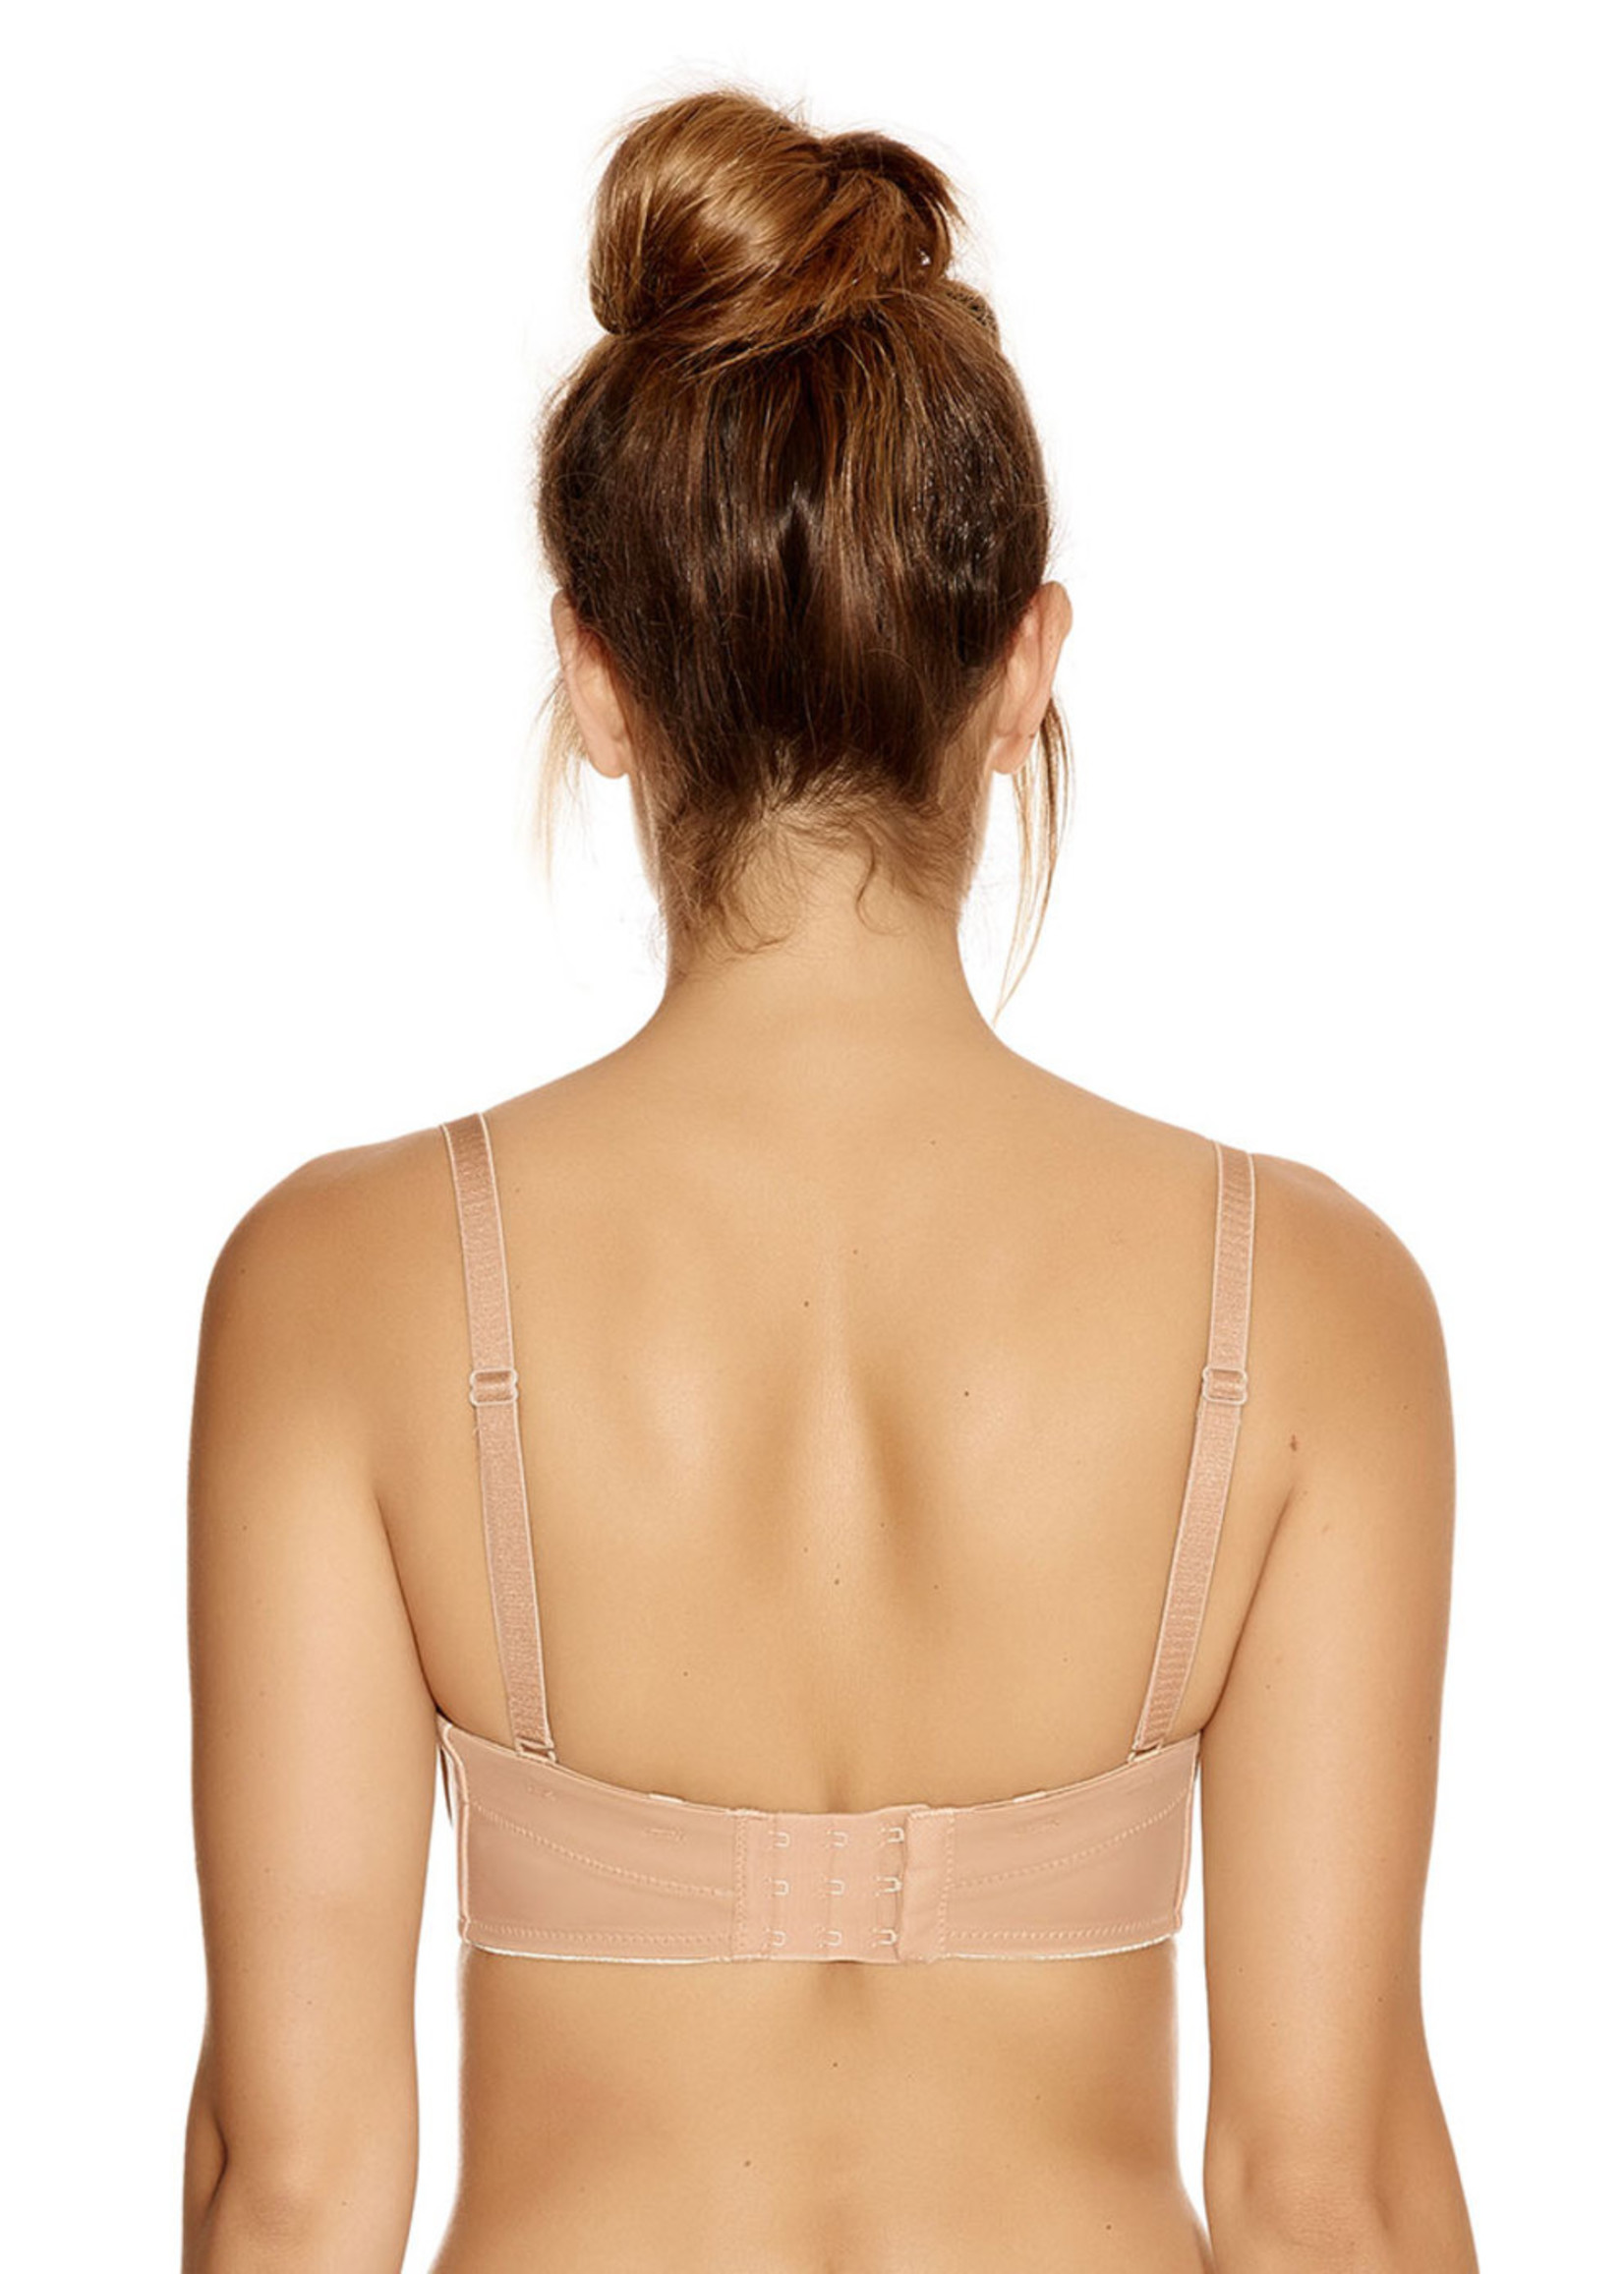 Fantasie Smoothing Strapless Bra